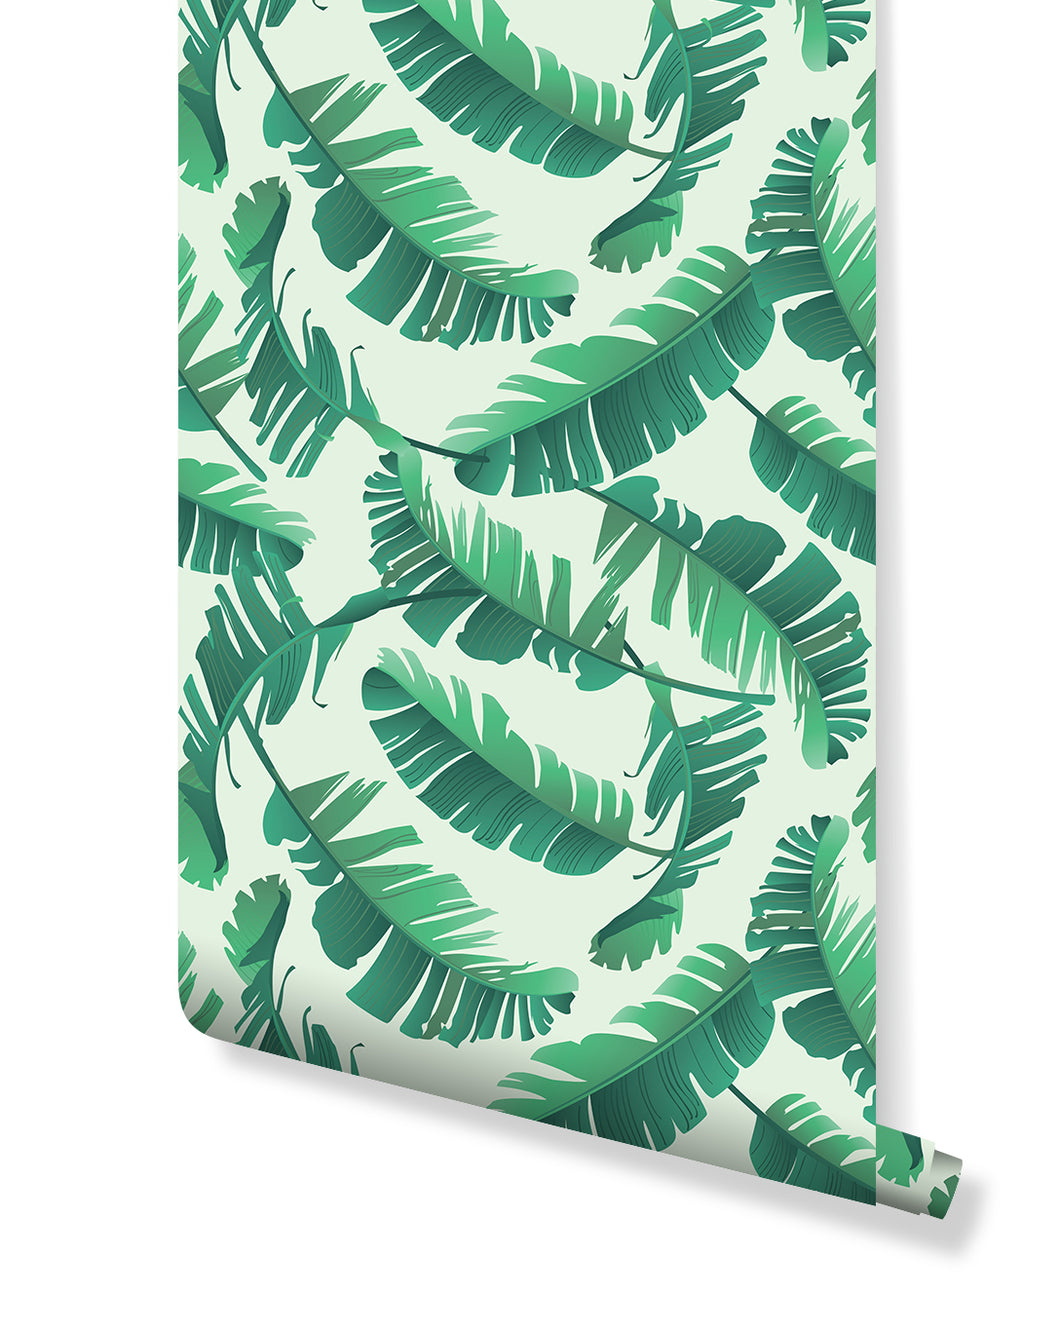 Self Adhesive Removable Wallpaper Tropical Banana Palm Leaves Wall Art Costacover #tropical #leaf #plant #aesthetic #ftestickers sticker by arminé. usd